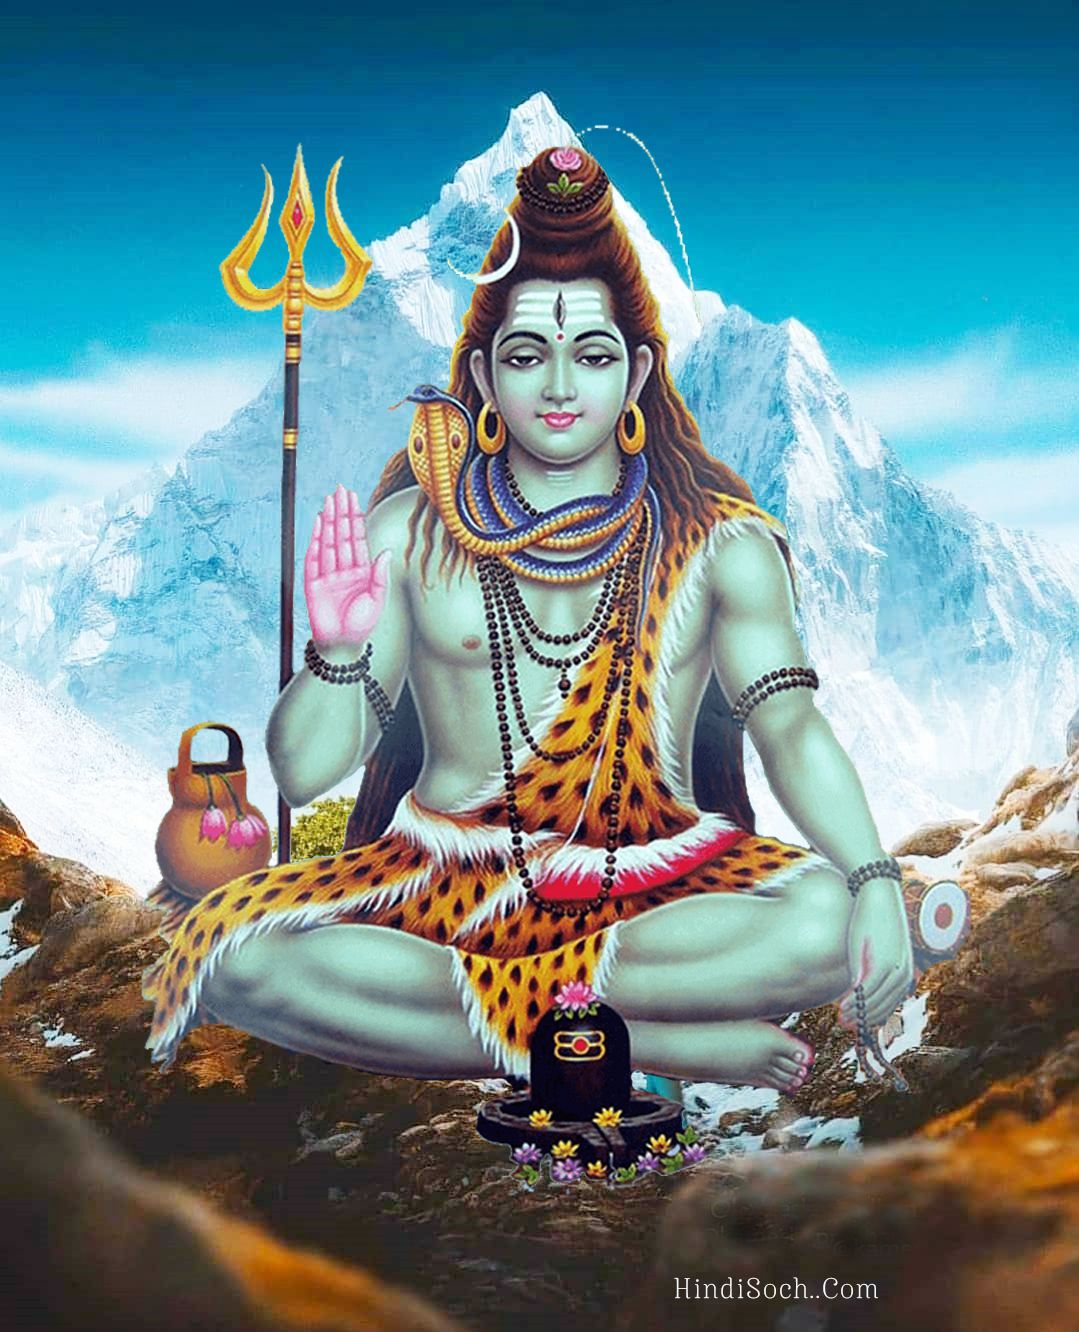 HD Lord Shiva Image Download Free